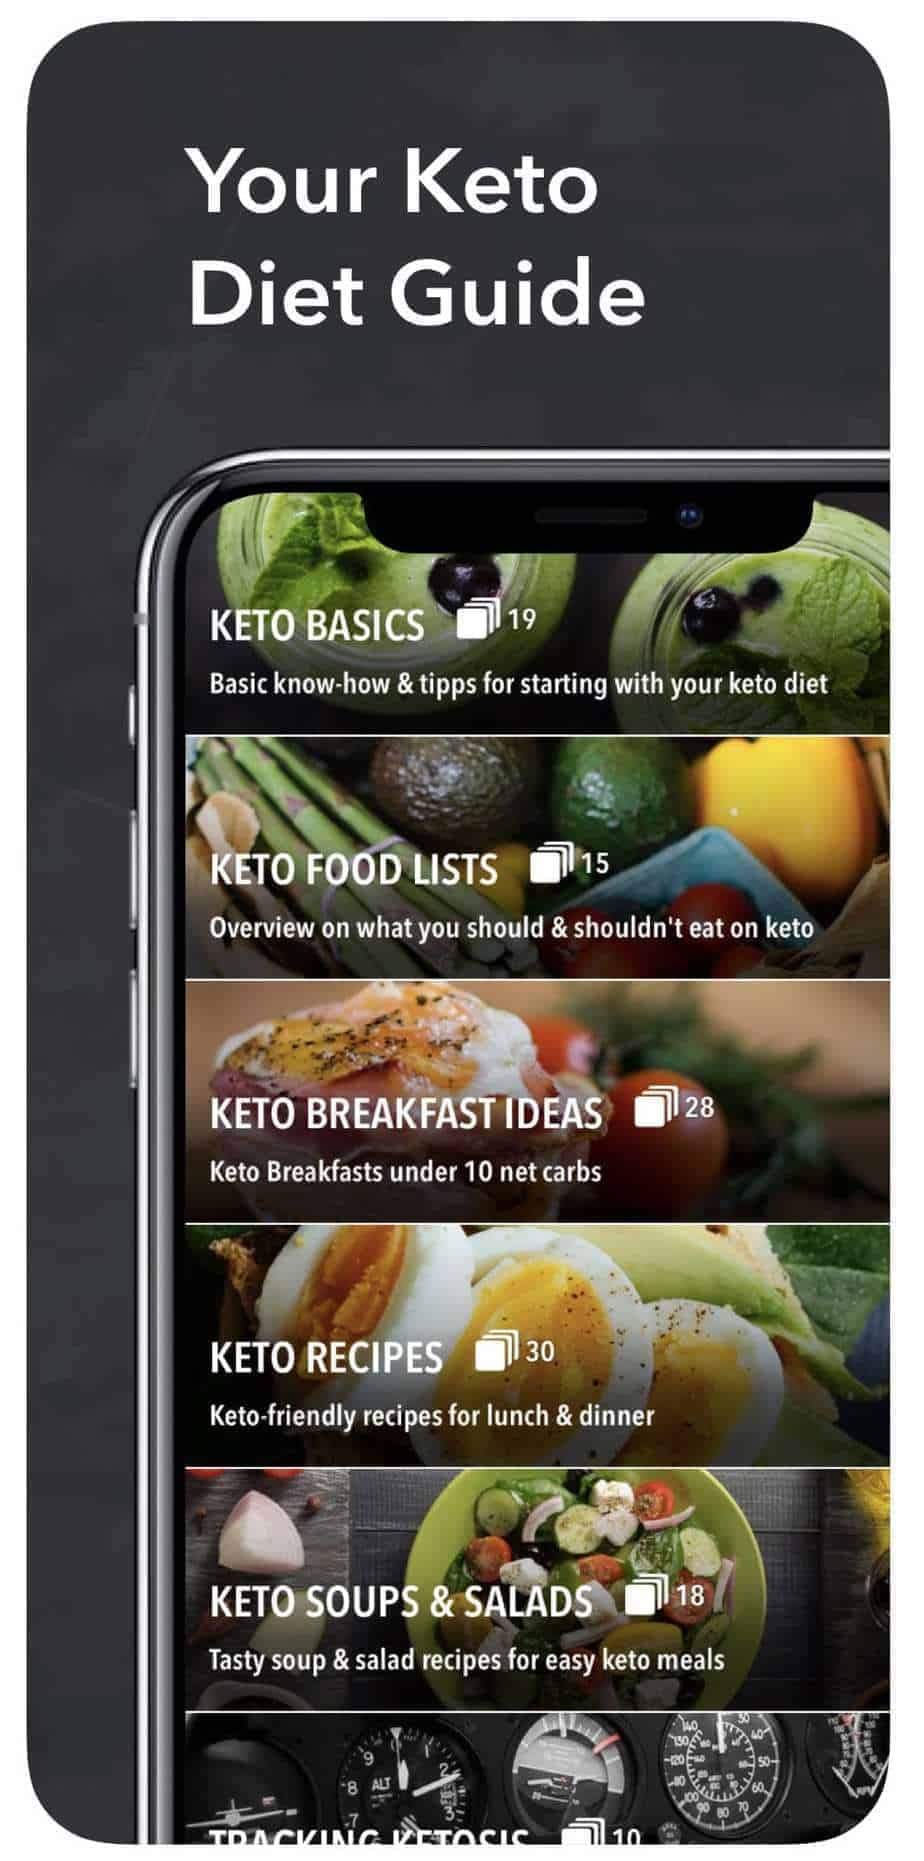 Keto diet & Ketogenic recipes app